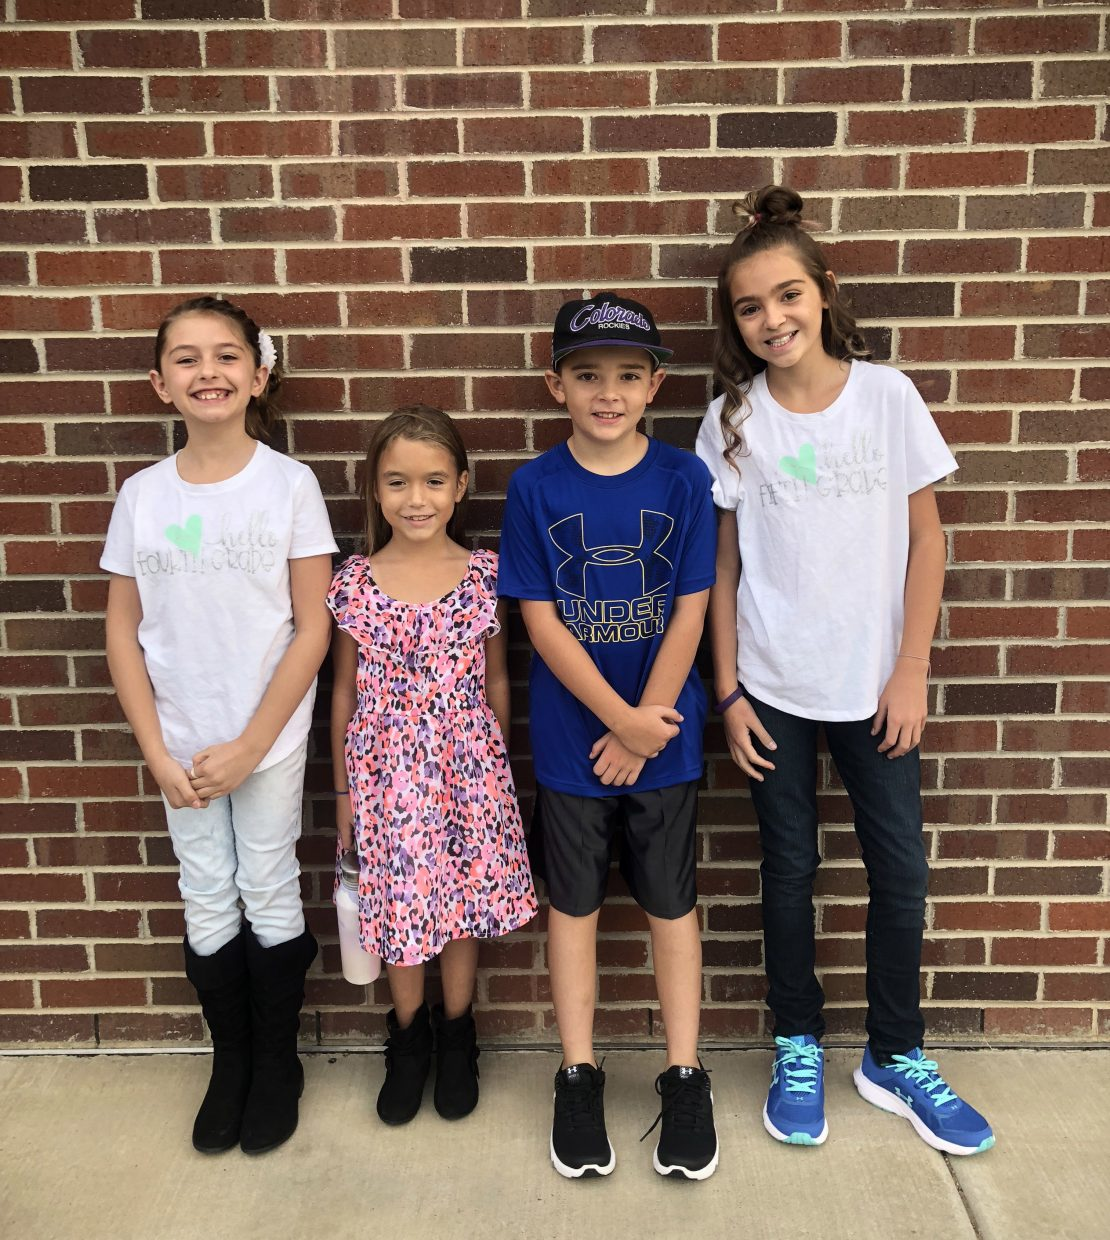 First day for Sandrock Elementary School students, from left: Forth grader Crystalynn Poole, second grader Emmalynn Poole, third grader Liam Mannon and fifth grader Jordyn Mannon.